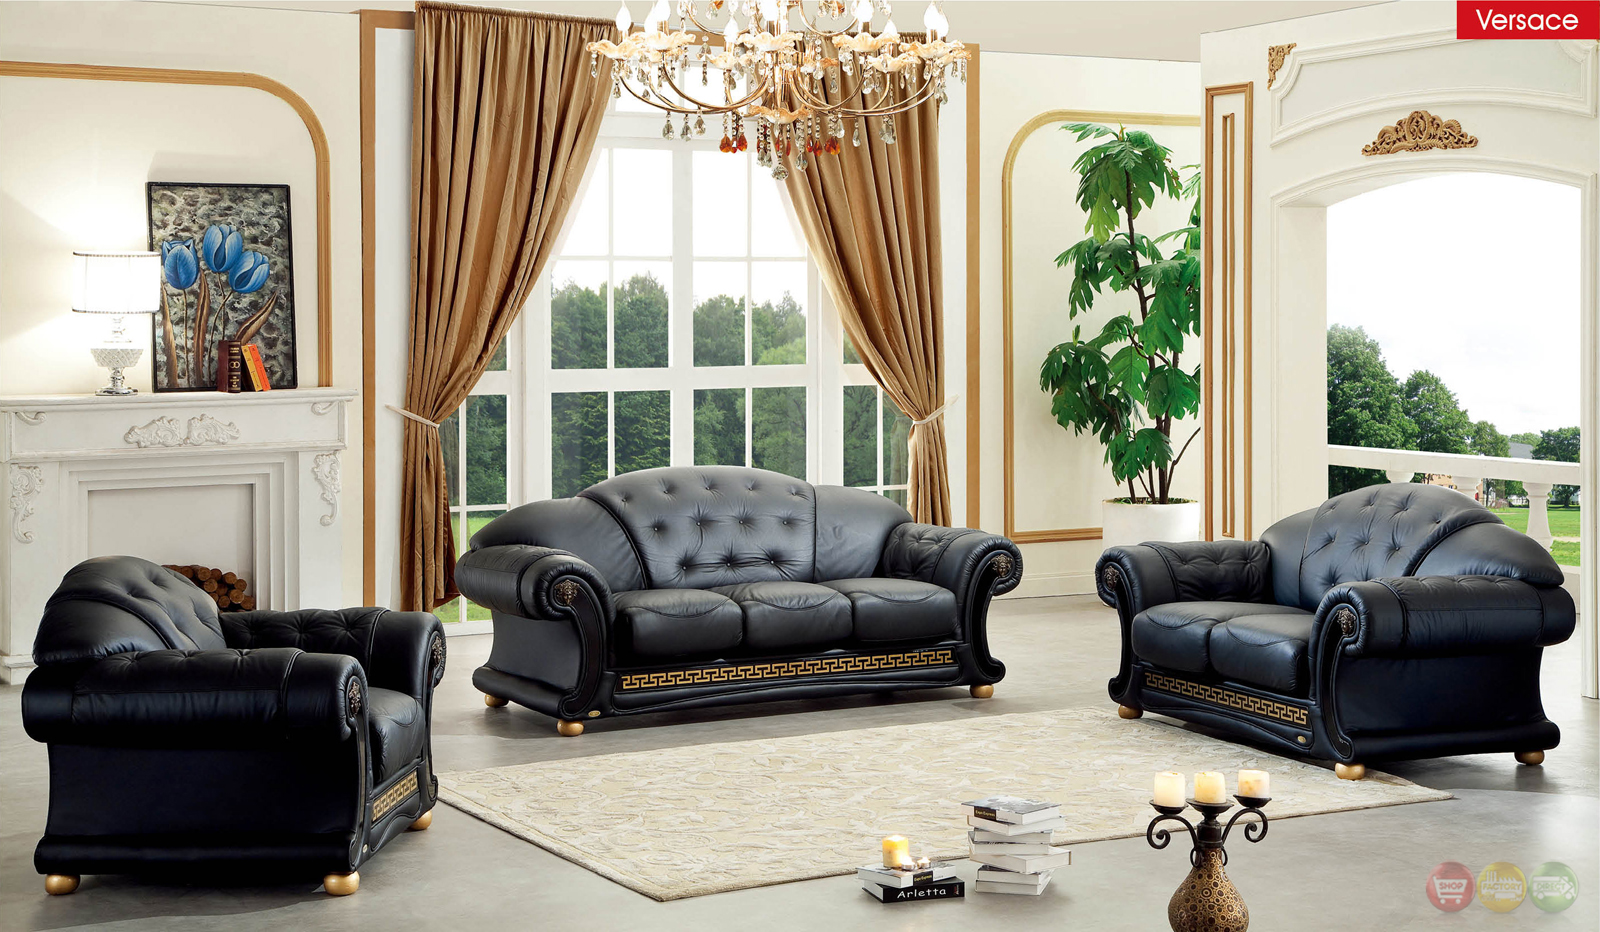 incredible italian living room furniture sets | Versace Black Genuine Italian Leather Luxury Sofa Loveseat ...